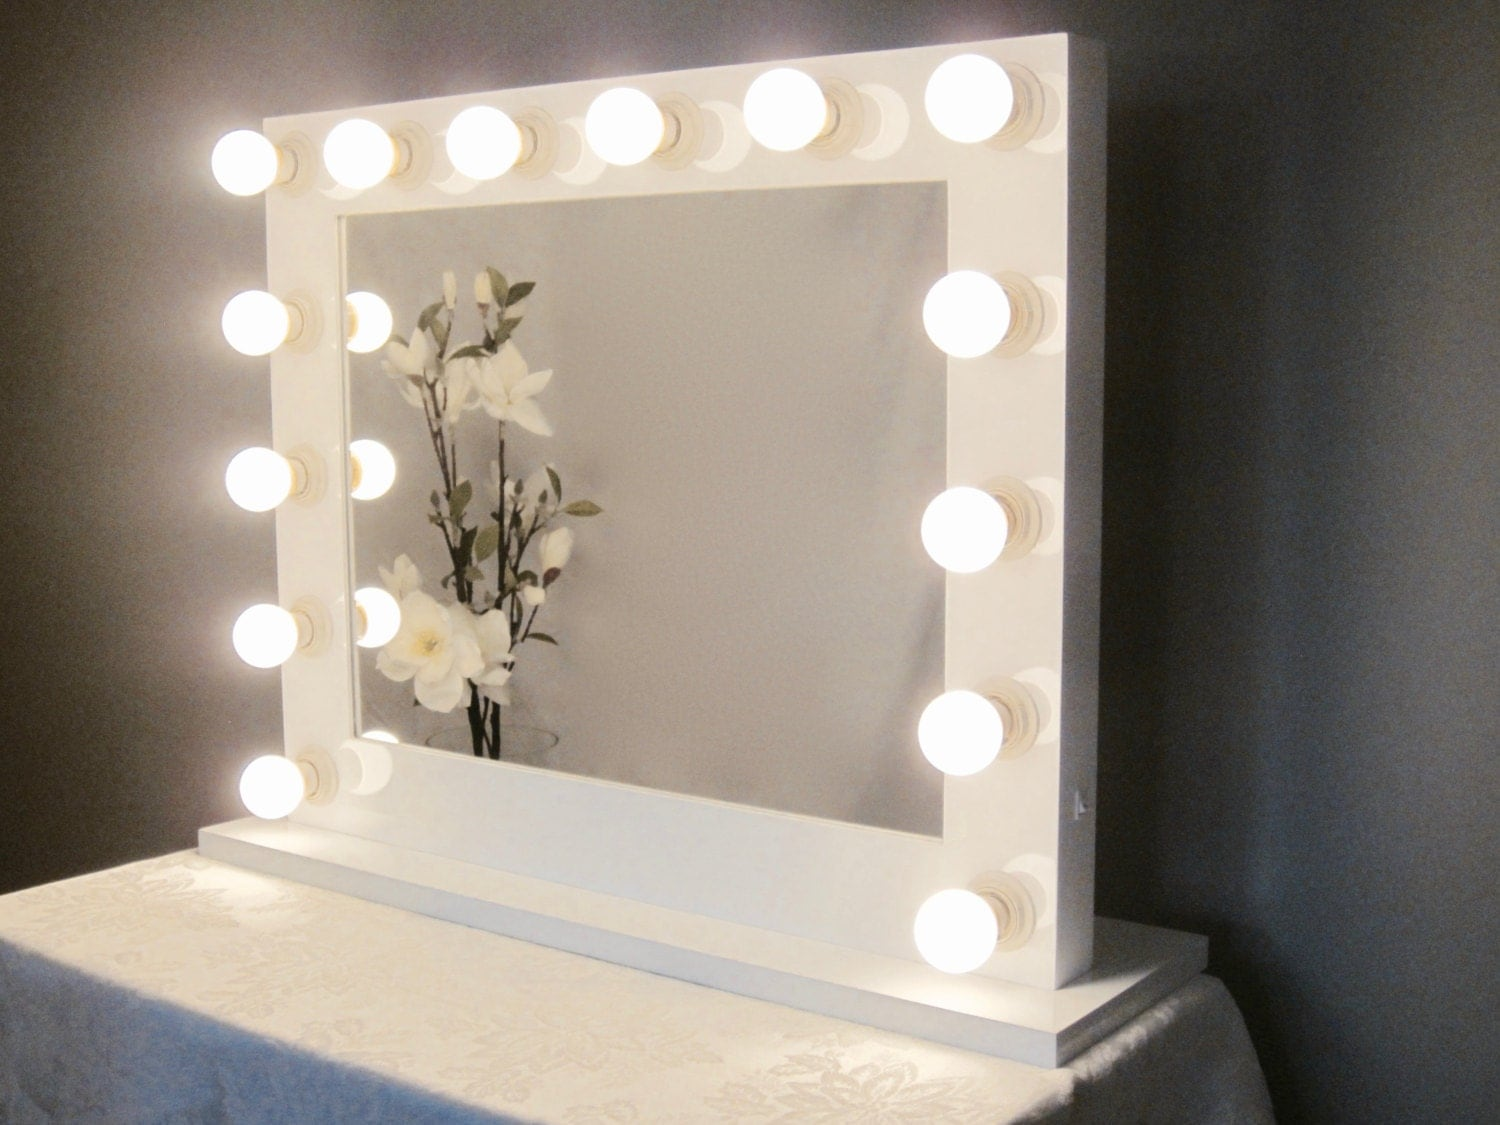 Grand Hollywood Lighted Vanity Mirror w LED Bulbs by